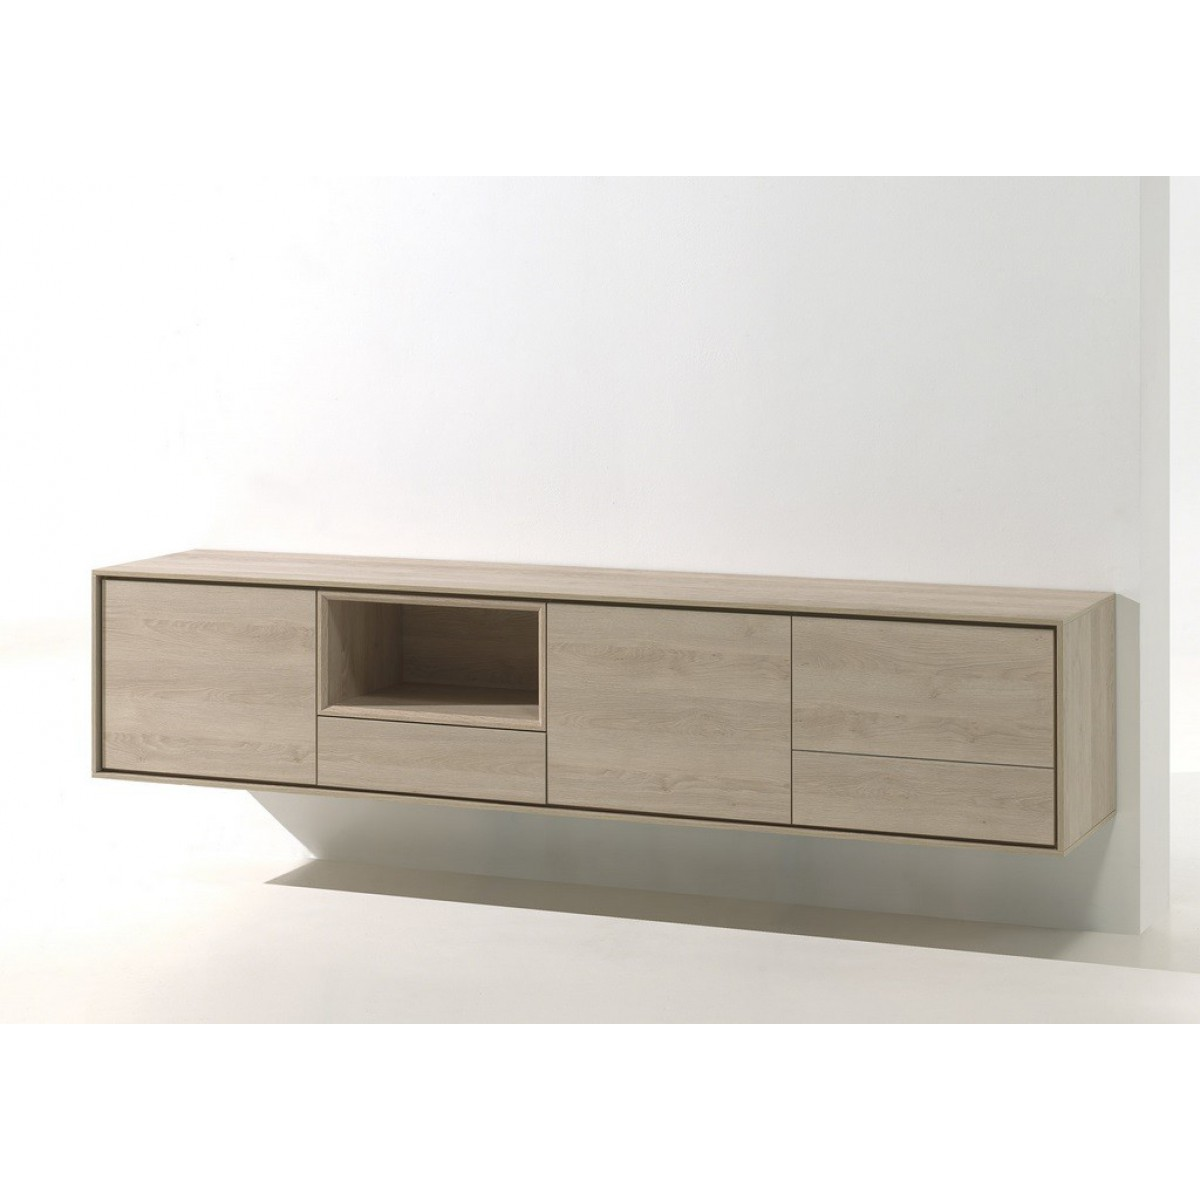 kyara tv sideboard c0059a i live design preisg nstig online moebel kaufen. Black Bedroom Furniture Sets. Home Design Ideas